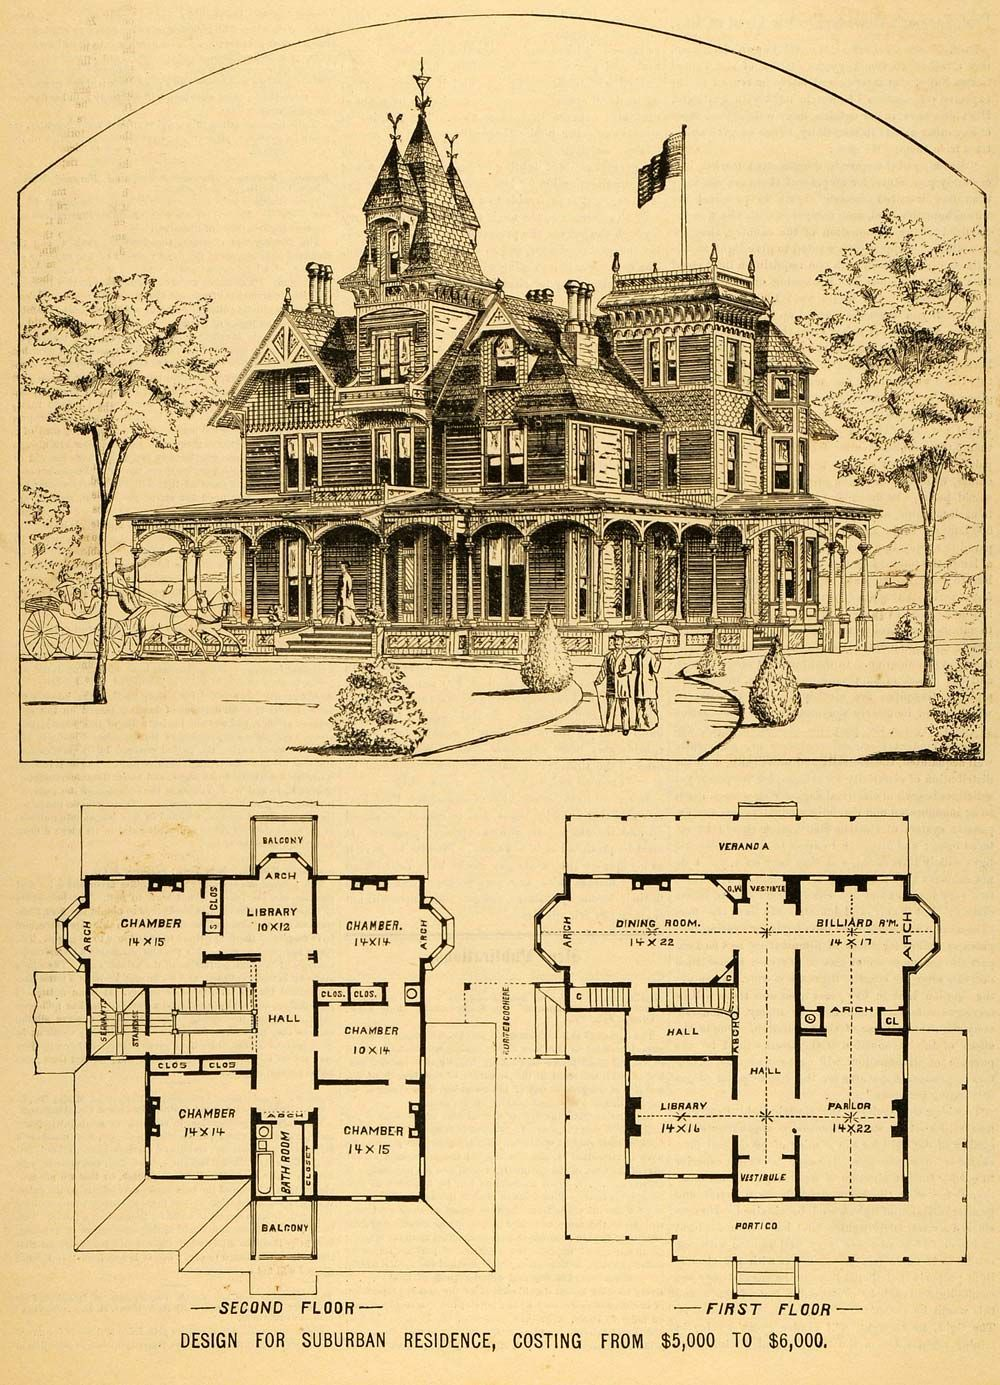 1879 print victorian house architectural design floor plans horace g knapp nyack - Victorian House Design